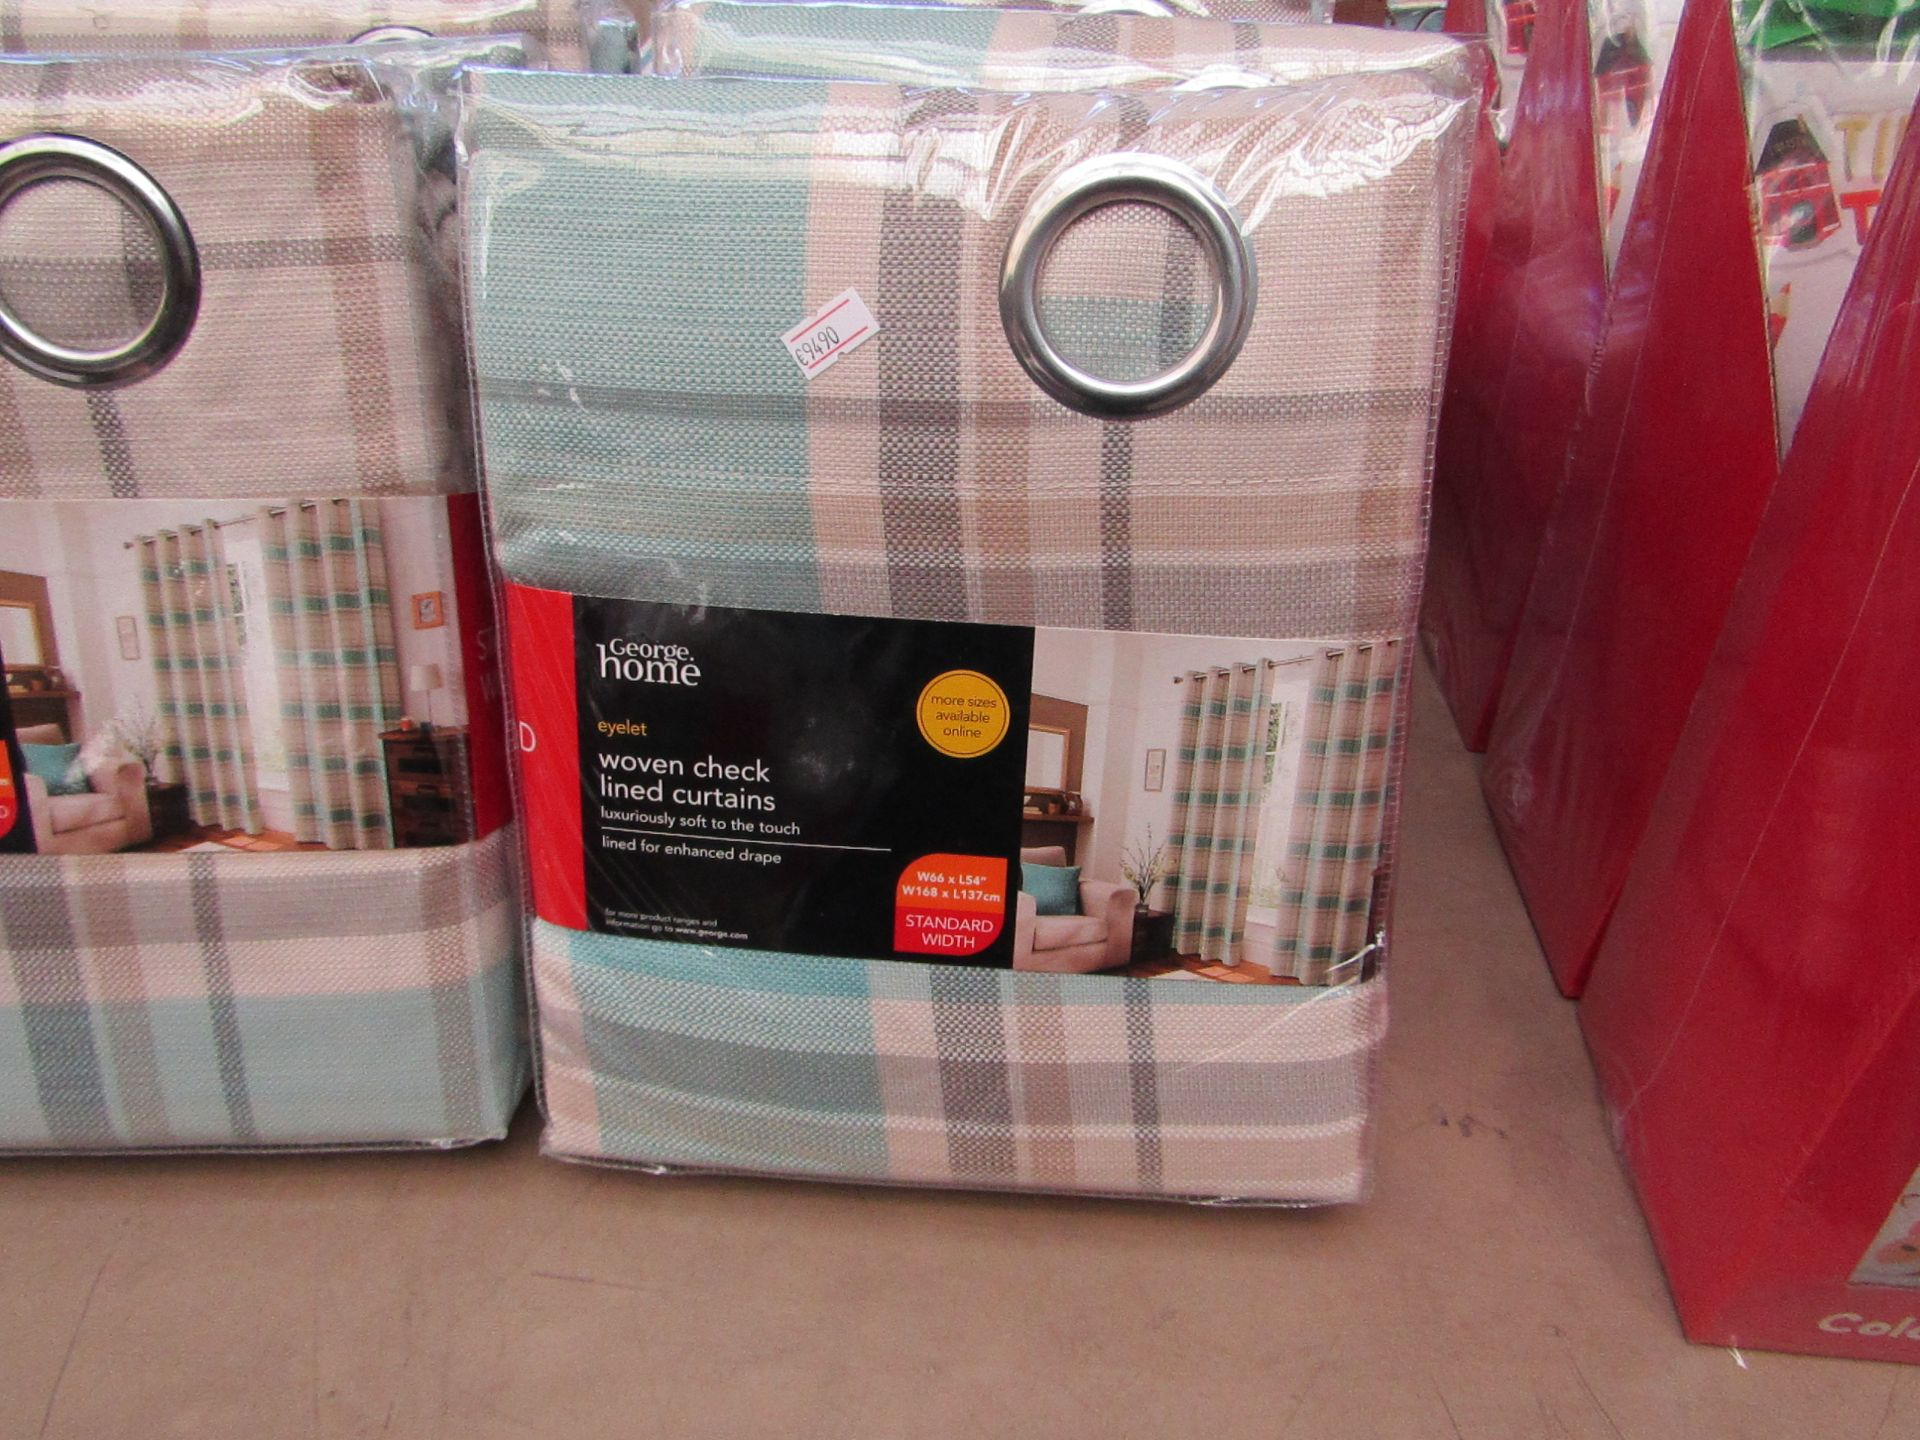 "Lot 12 - George Home woven checkered lined curtains, W 66 x L 54"", new and packaged."